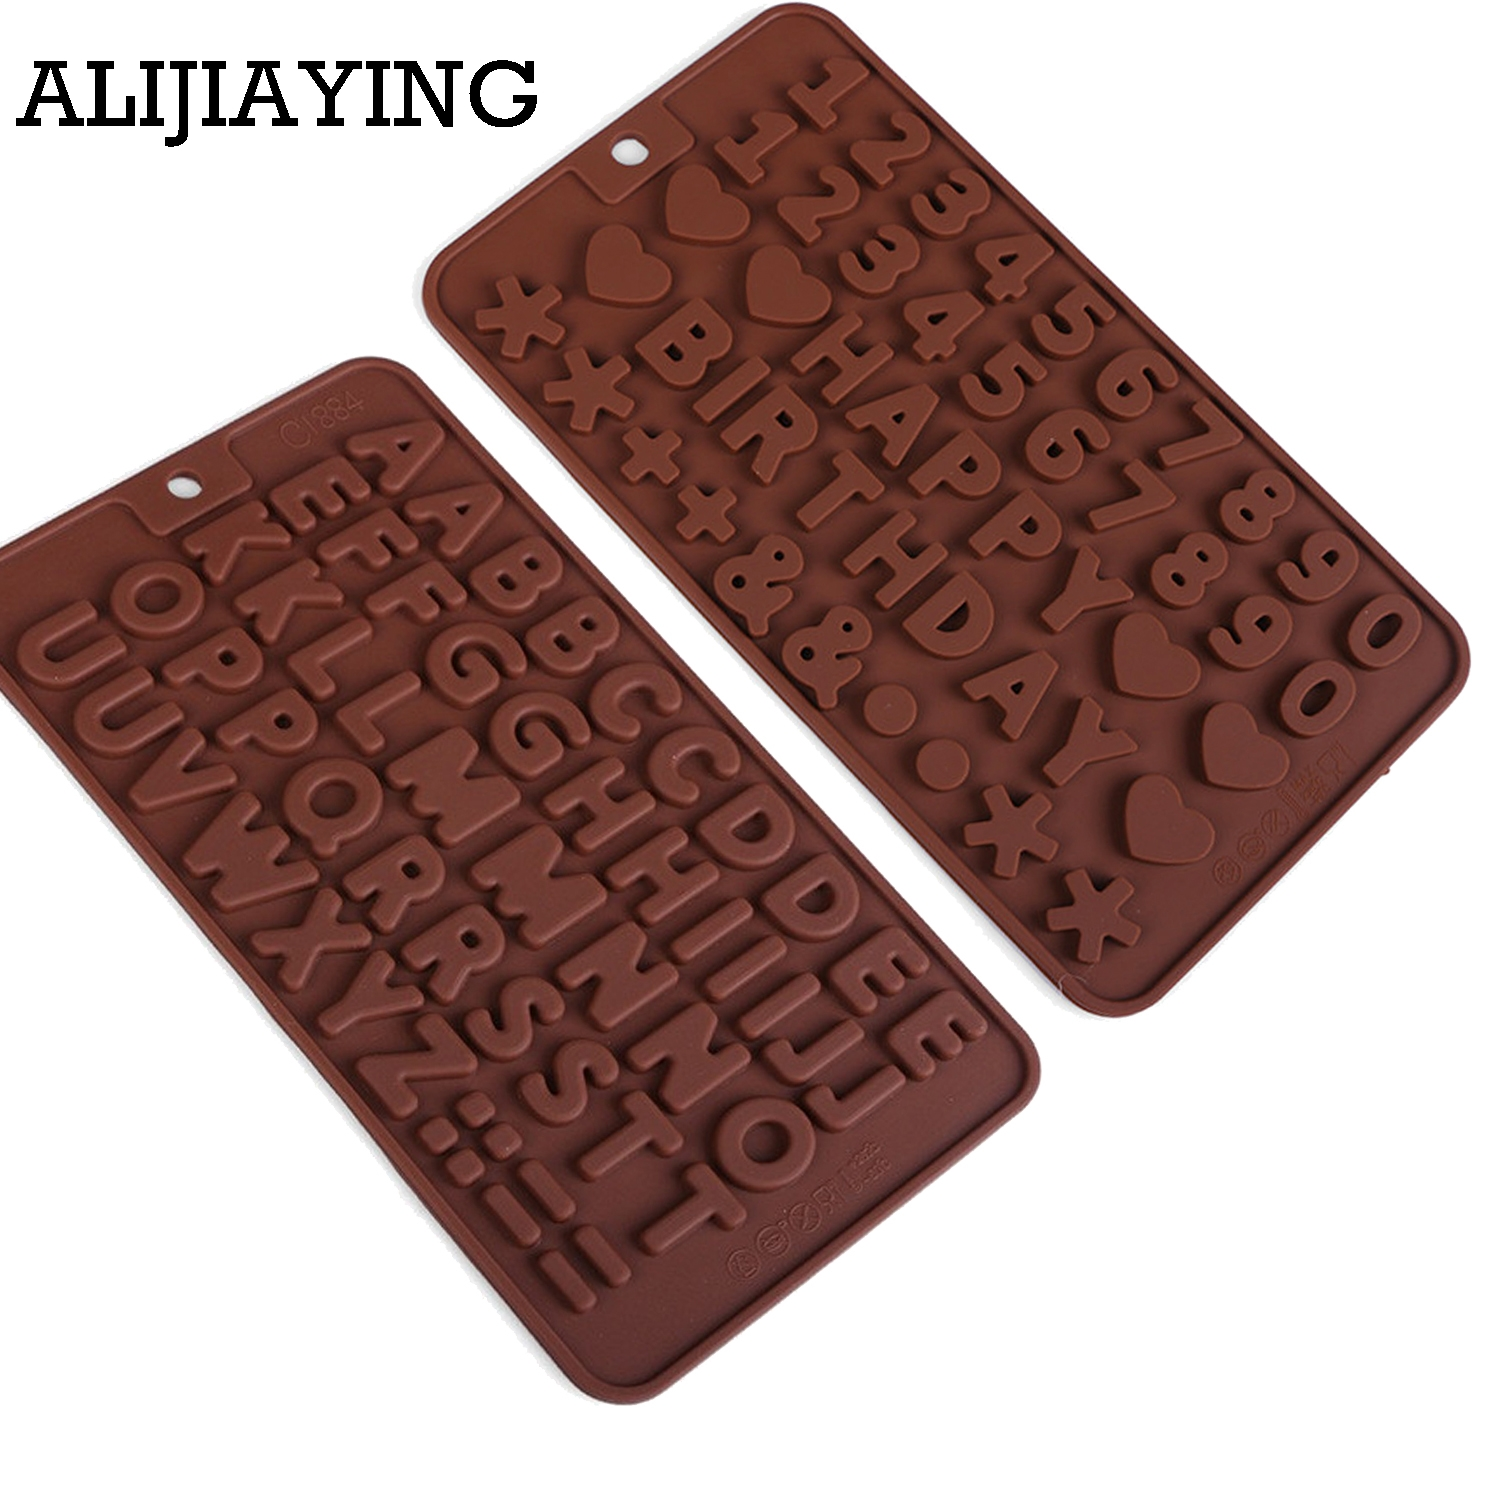 A187 Cake Decorating Tools Silicone Chocolate Mold Letter And Number Fondant Molds Cookies Bakeware Tools